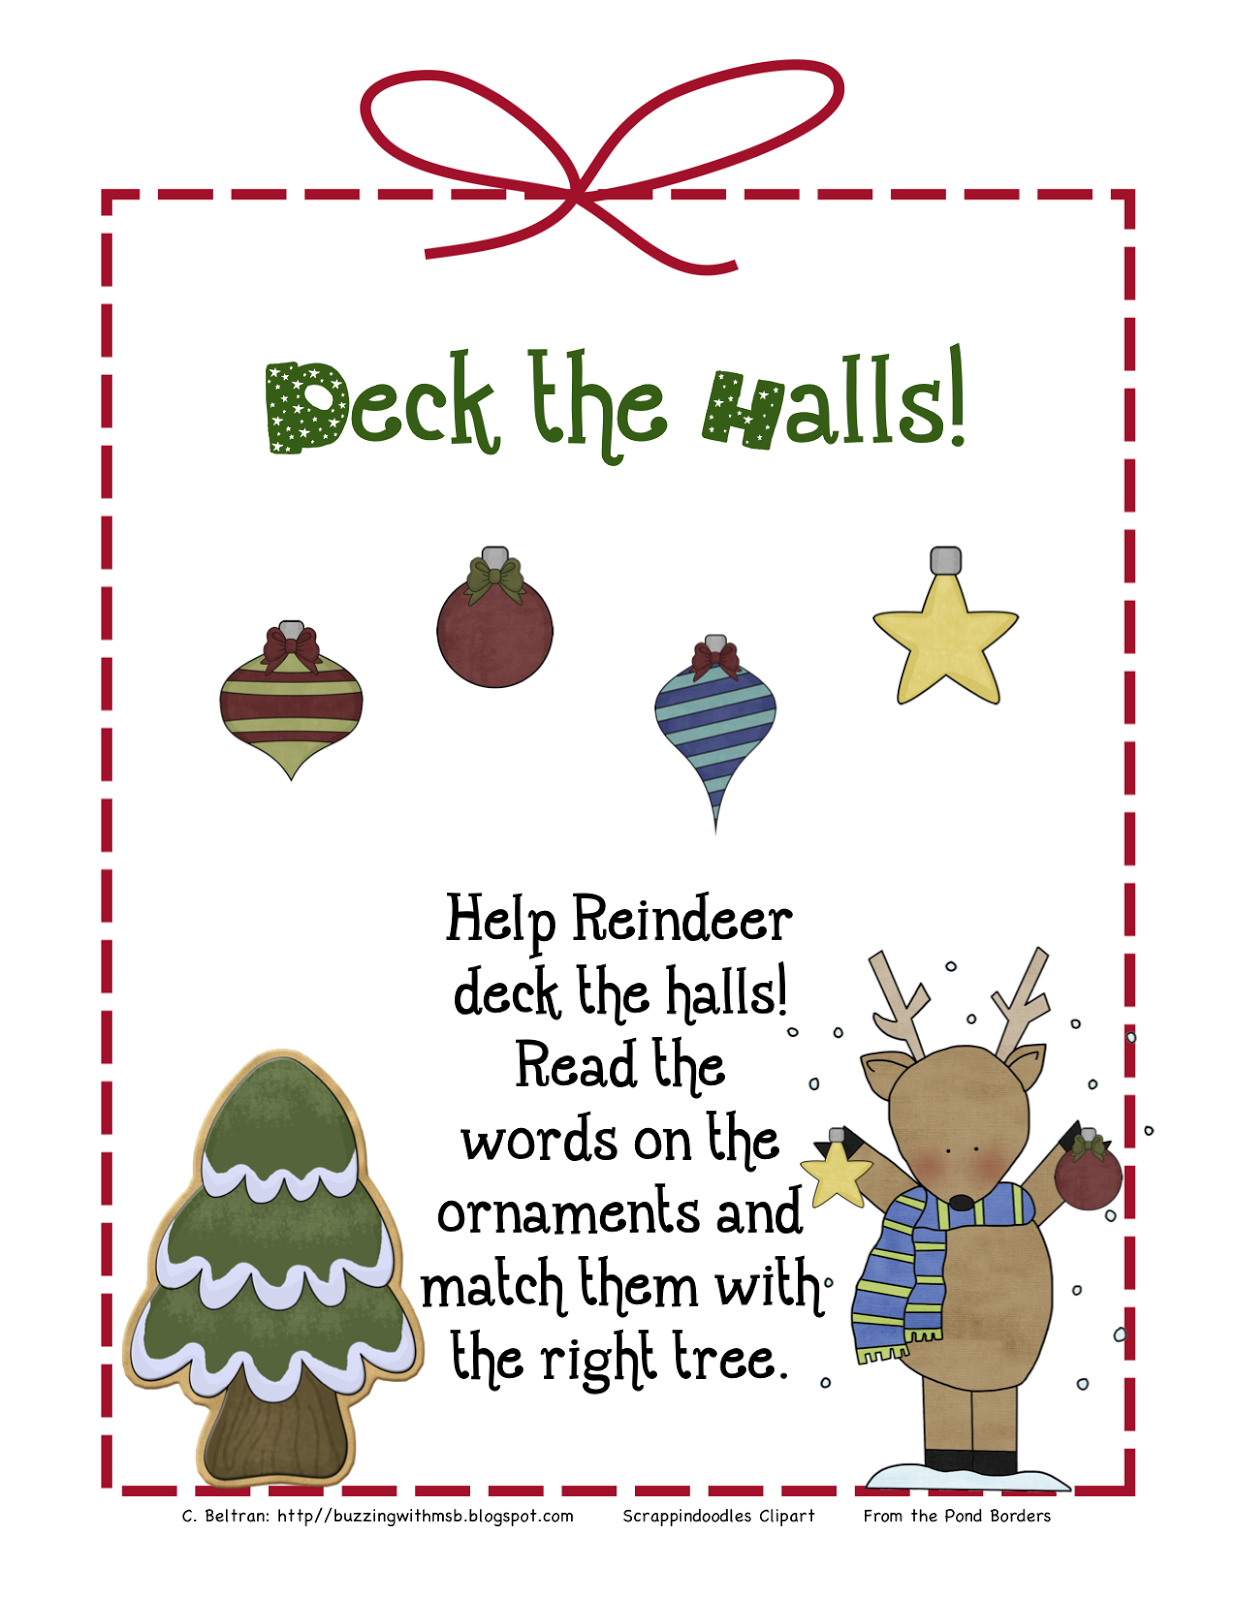 http://www.teacherspayteachers.com/Product/Deck-the-Halls-Long-Vowels-vs-Short-Vowels-Matching-Game-173999